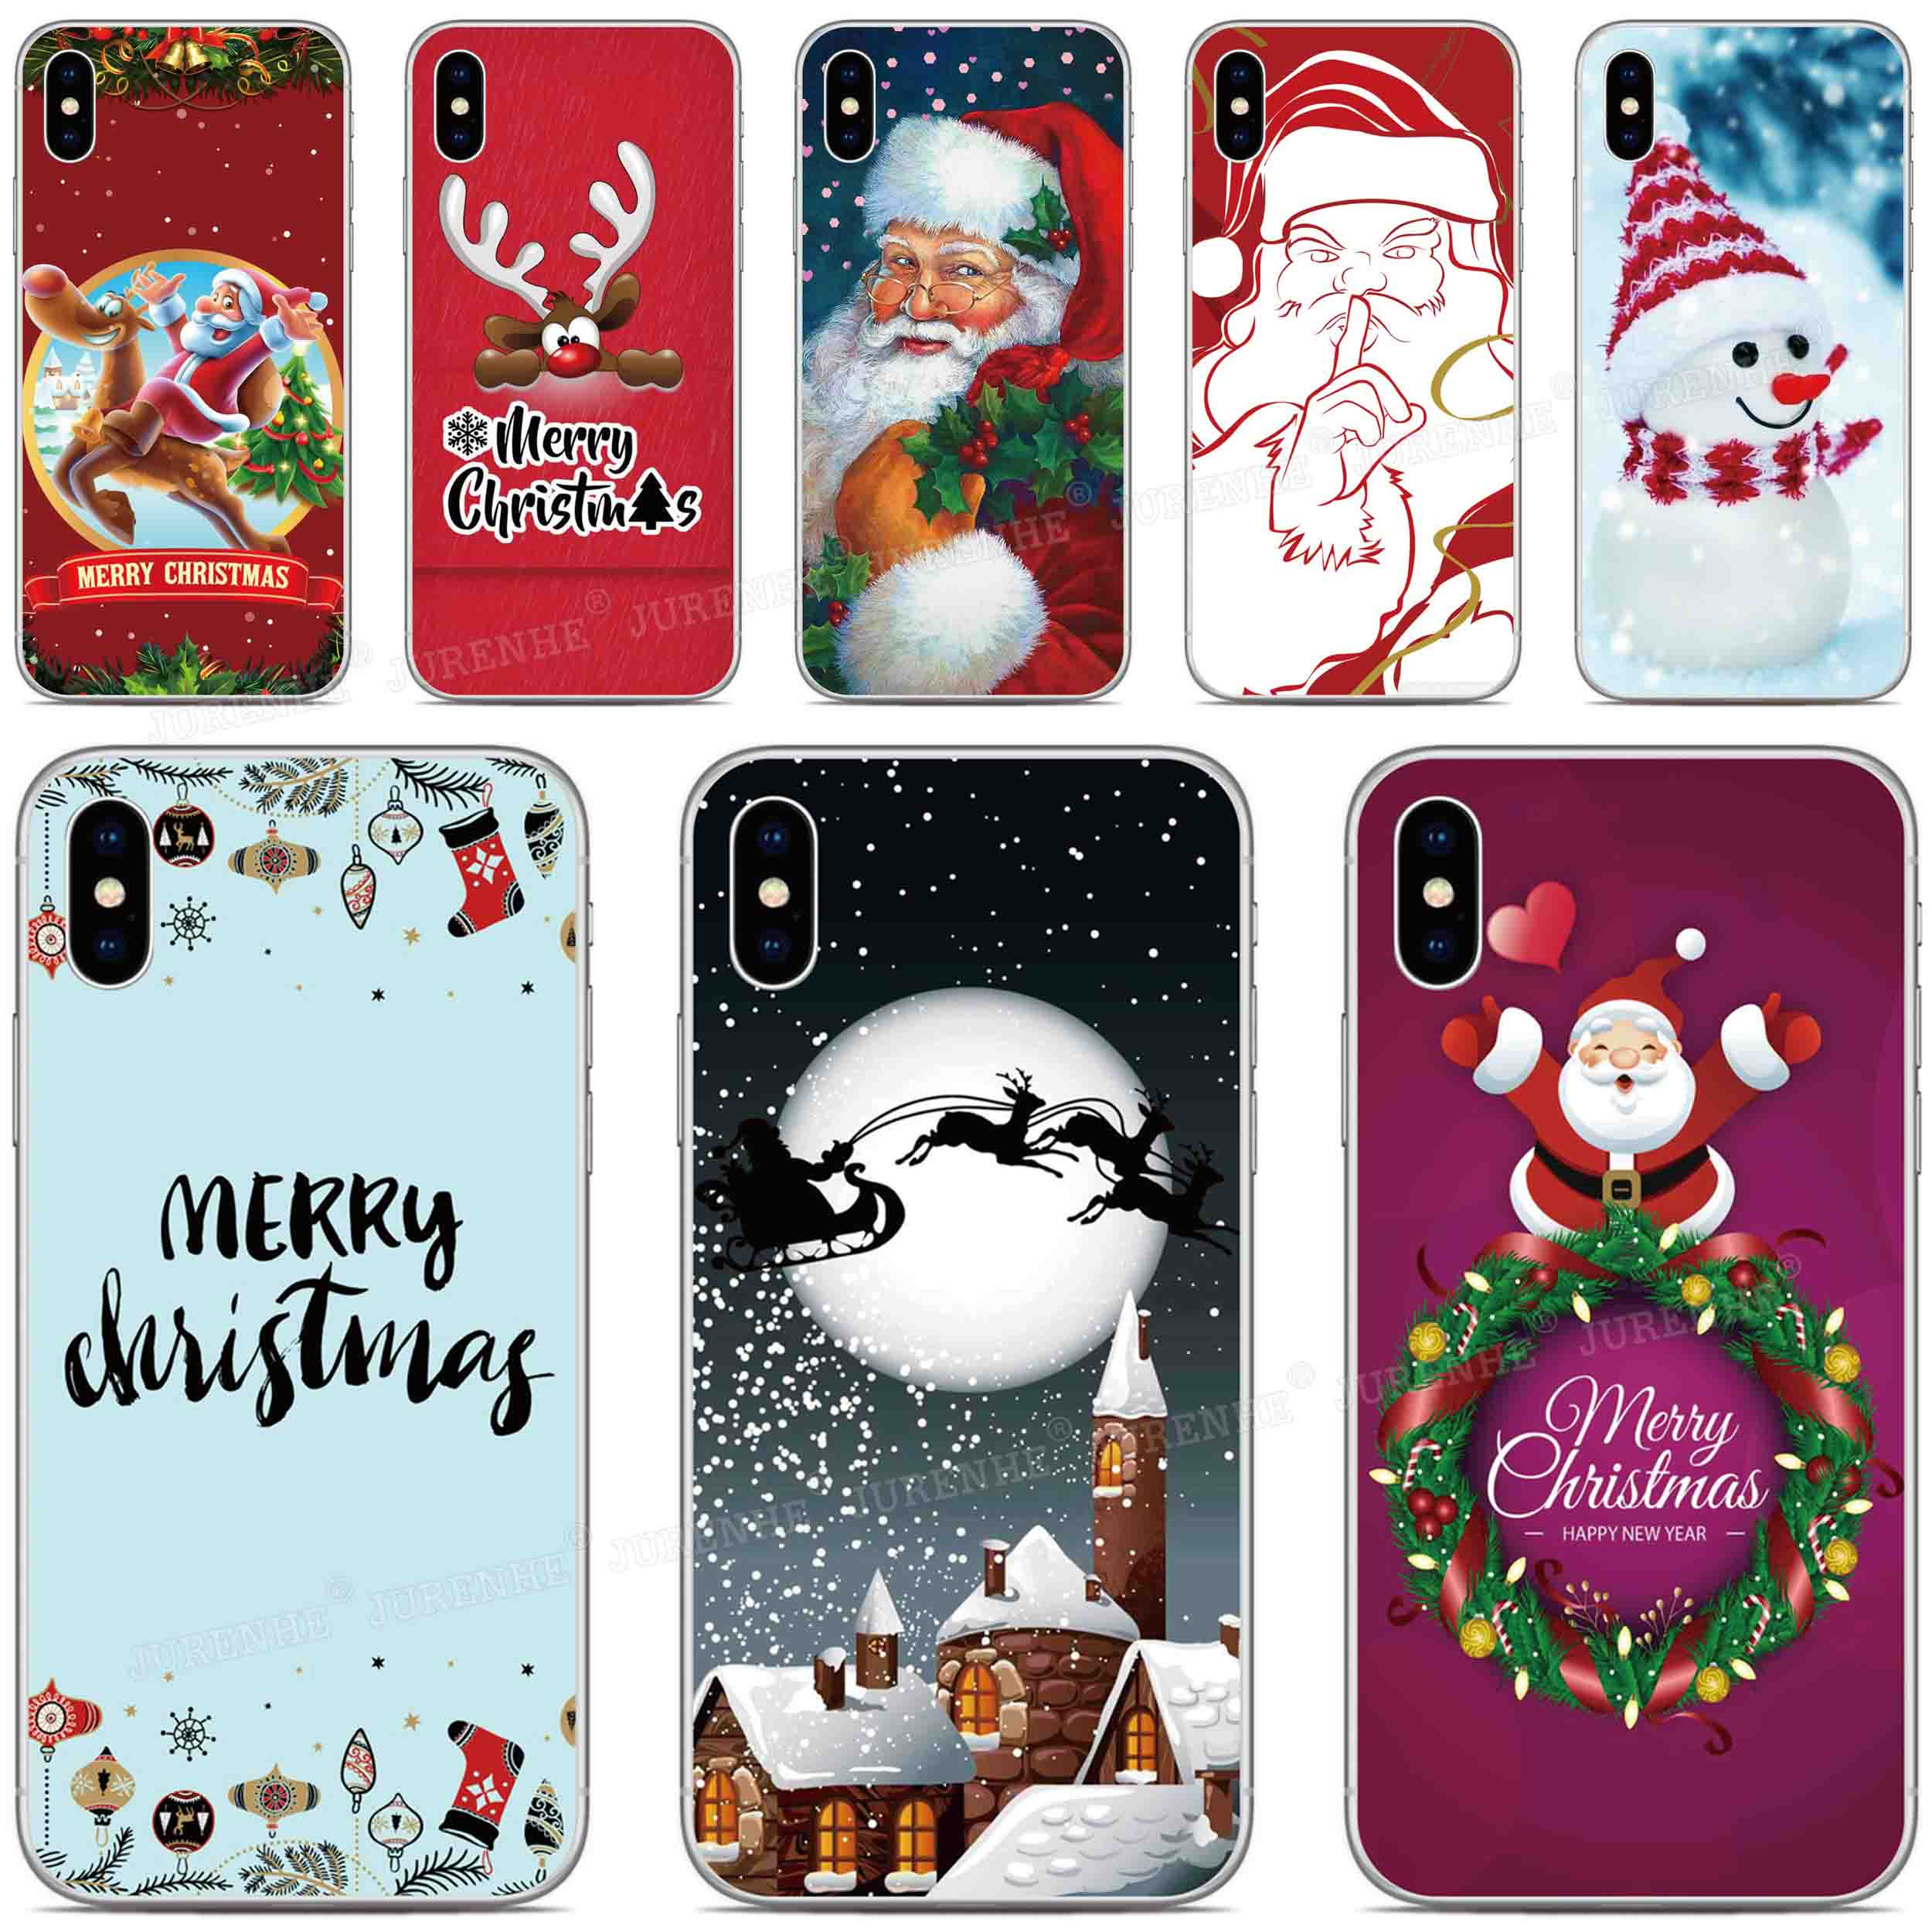 Silicone Merry Christmas Gift Cover For <font><b>Doogee</b></font> X90 X95 N20 Y9 Plus N10 Y7 Y8 Y8C X70 X60 X60L X50 <font><b>X50L</b></font> X30 X55 Mix 2 Phone <font><b>Case</b></font> image